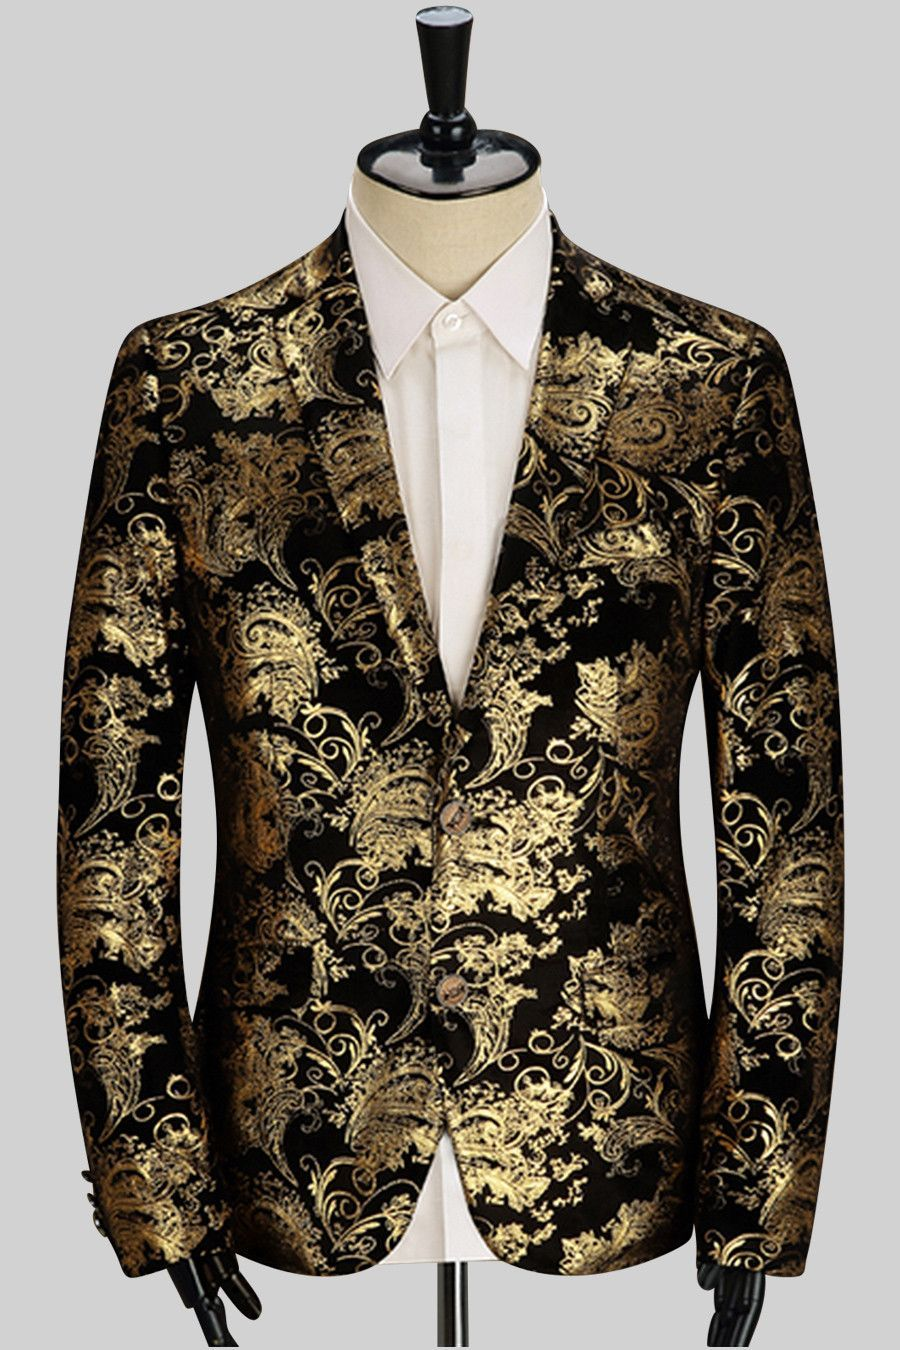 Add an interesting element to your work wardrobe with this golden floral  printed sport jacket. This light grey suit coat is overlaid ... 1d7bb0e05ce6